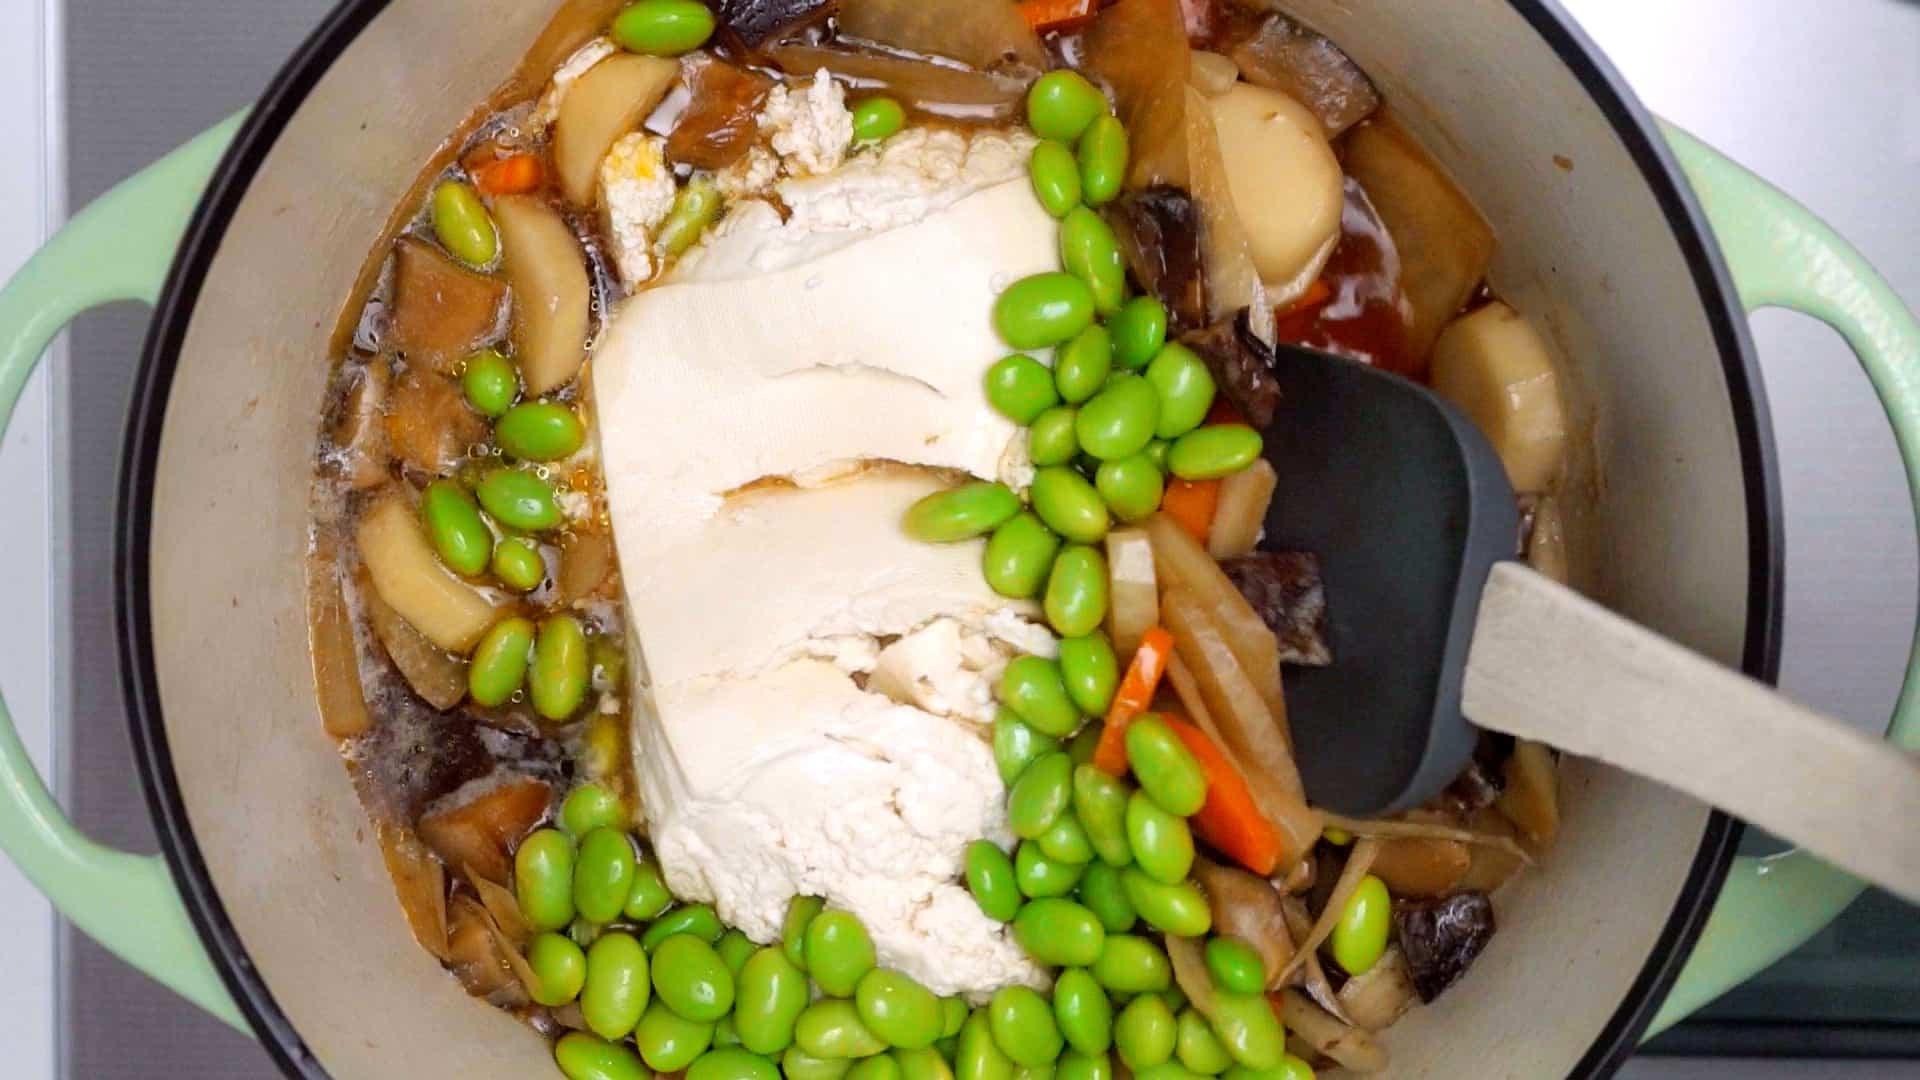 Tofu and edamame added to Japanese vegetable soup.